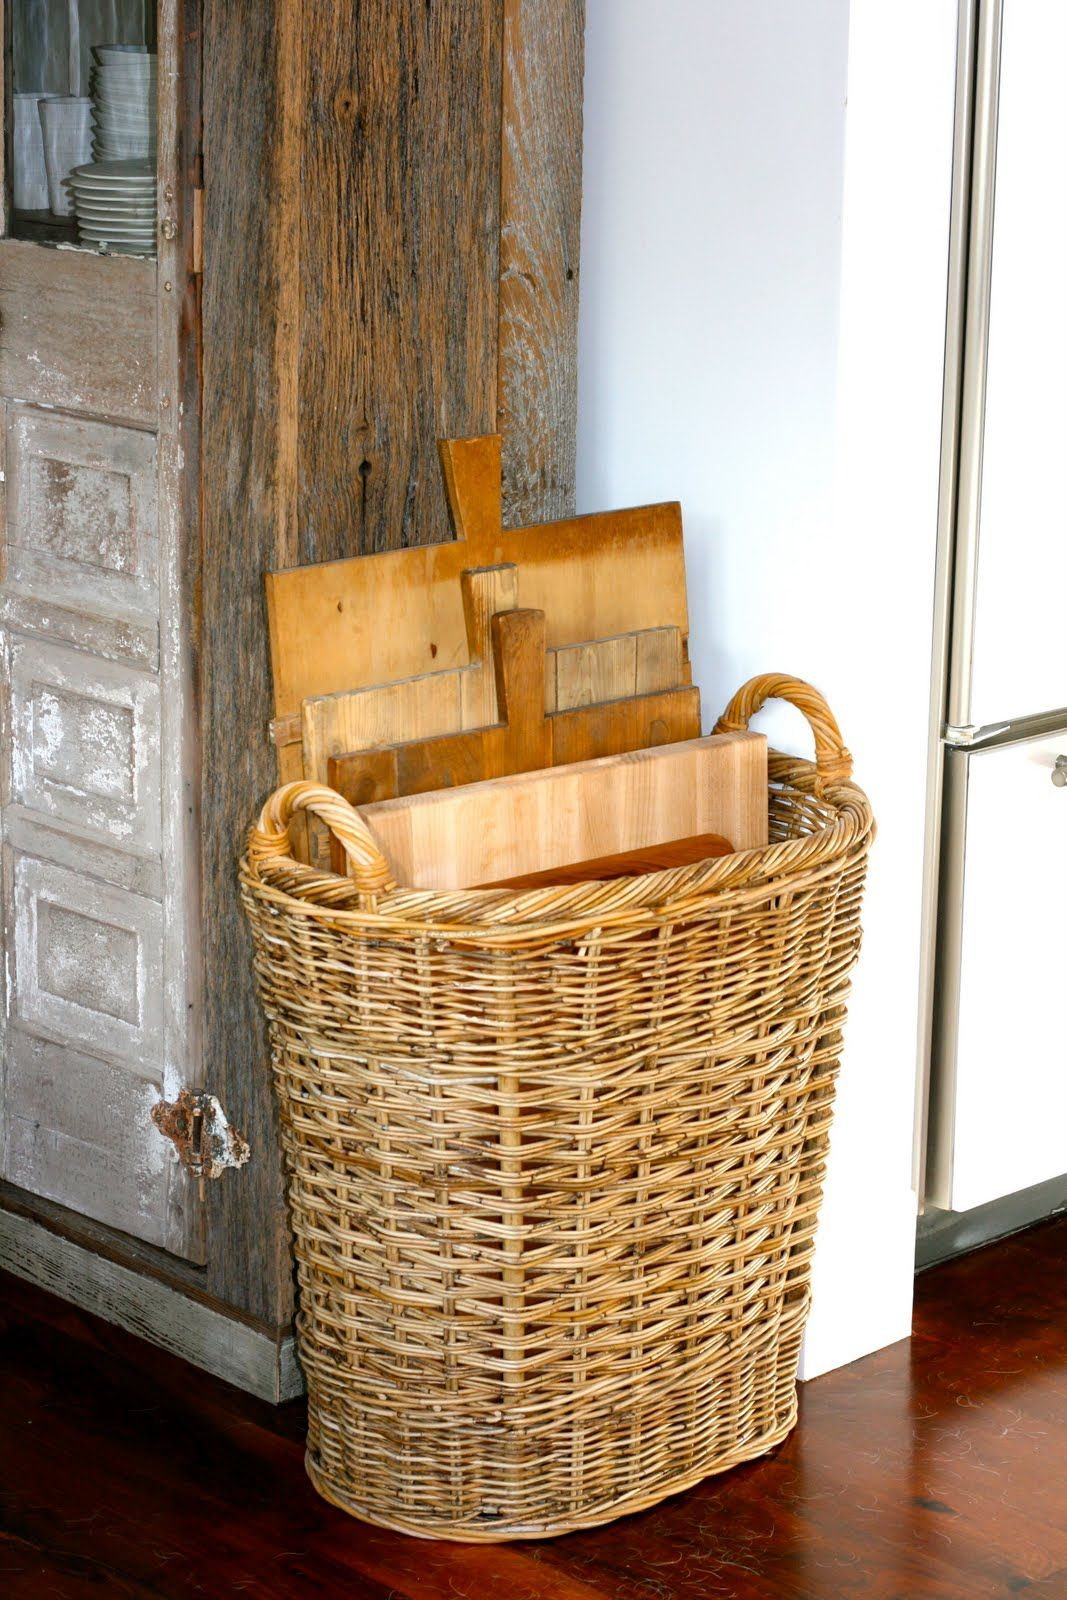 Basket for cutting boards.